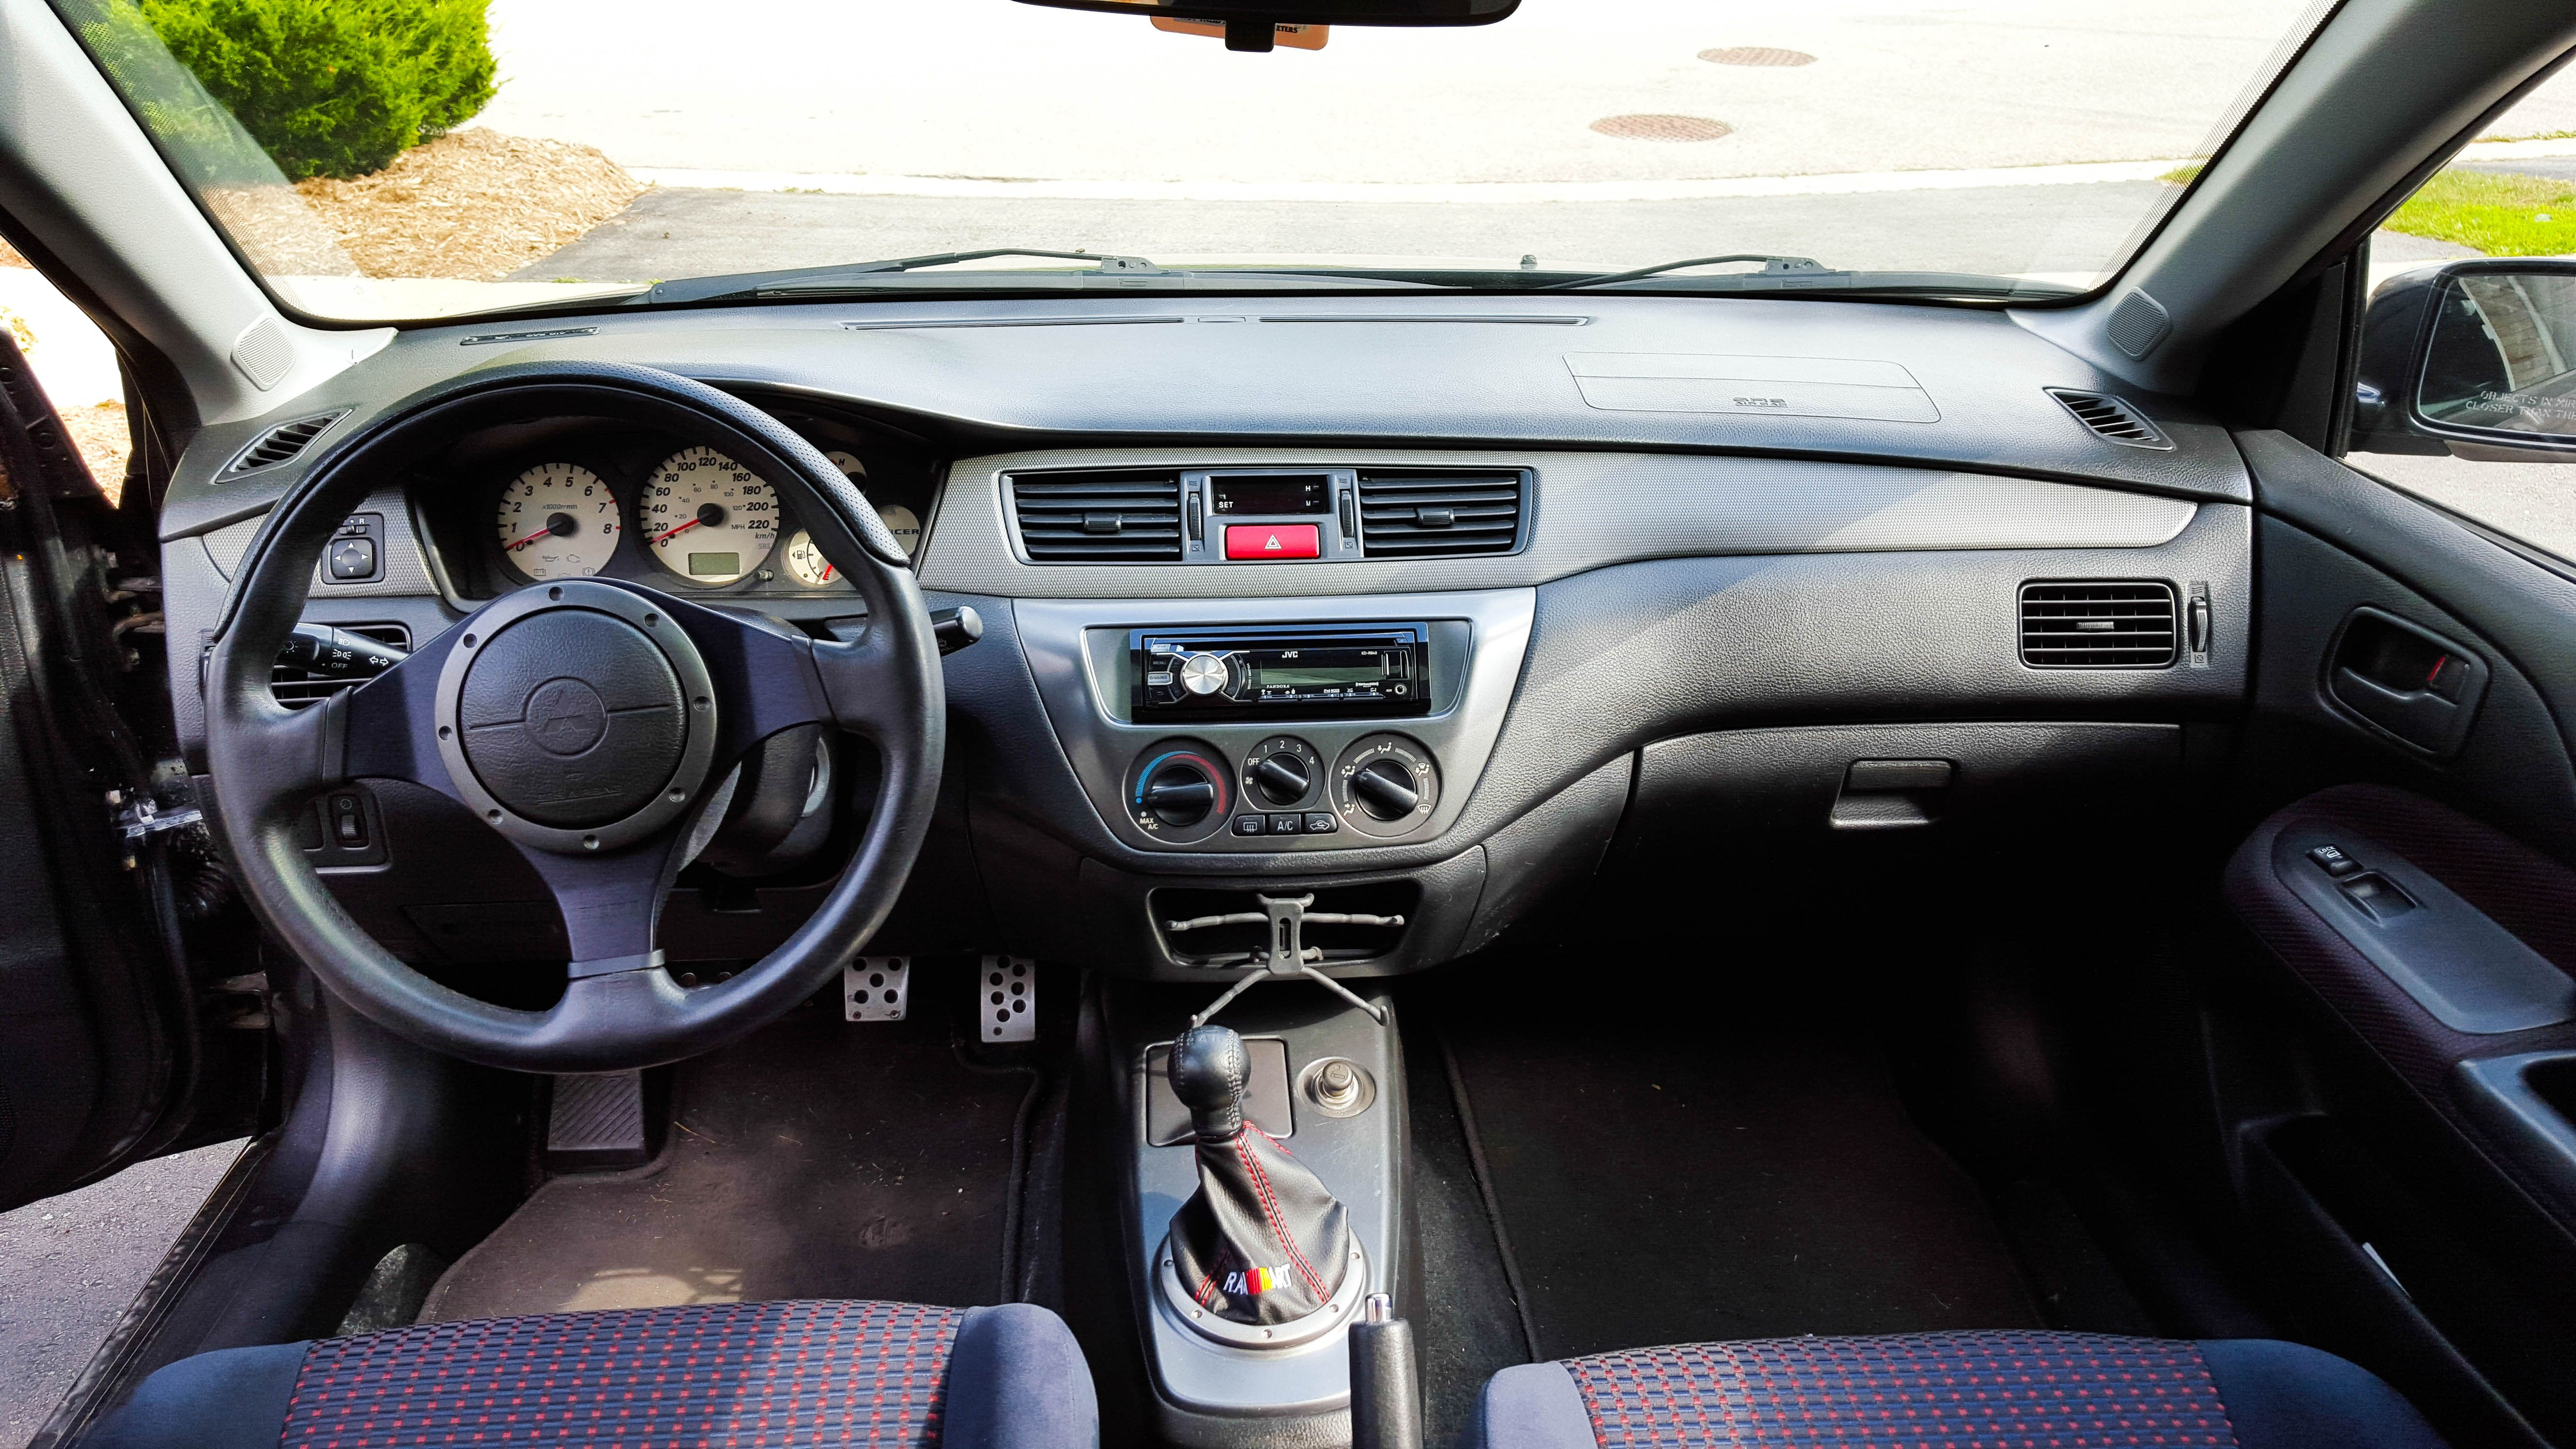 2004 Lancer Ralliart Interior (Canada) All Things Lancer